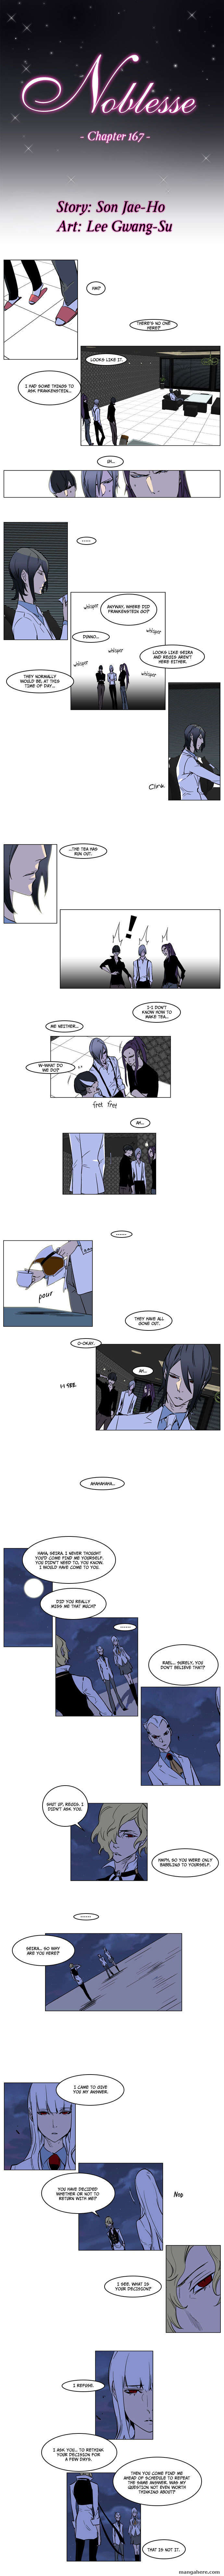 Noblesse 167 Page 2